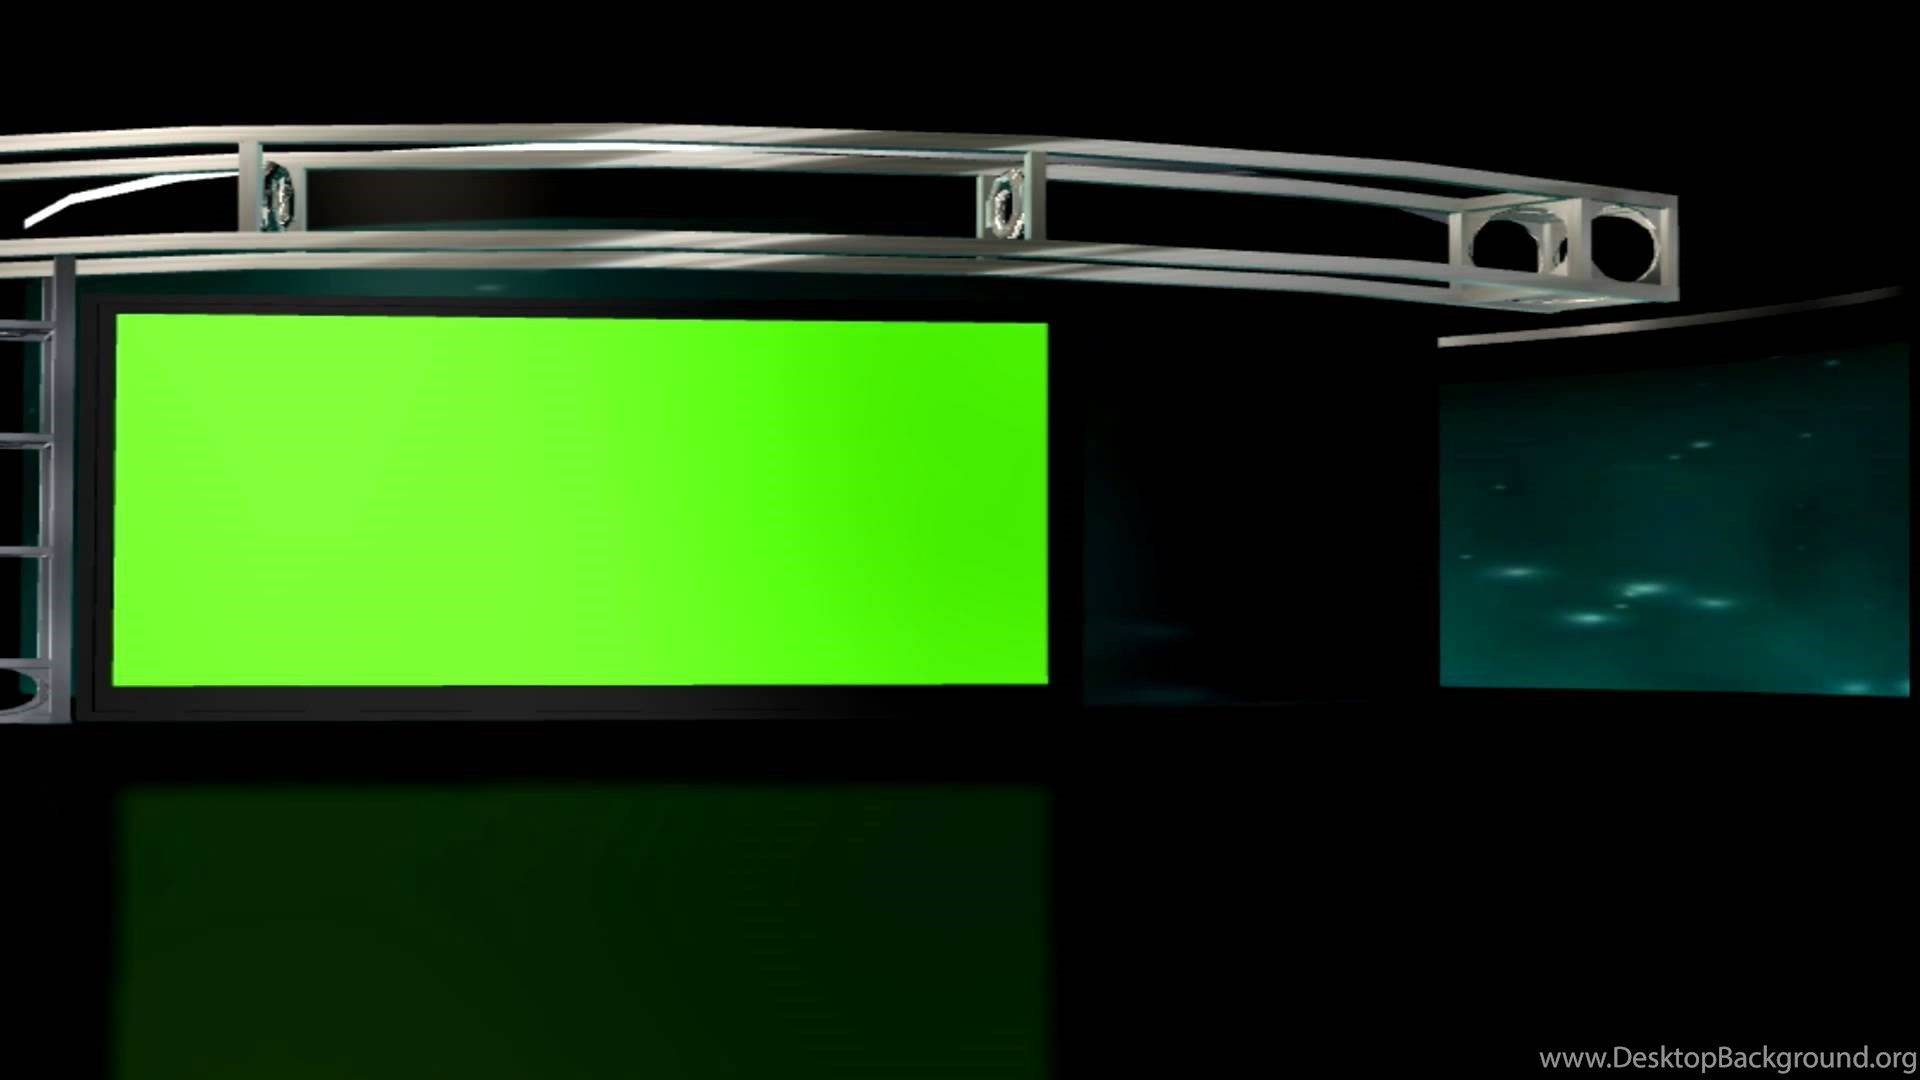 Tv Studio Background Free Download Free Hd Virtual Studio Set 2 Backgrounds Loop With Green Screen Tv Desktop Background free hd virtual studio set 2